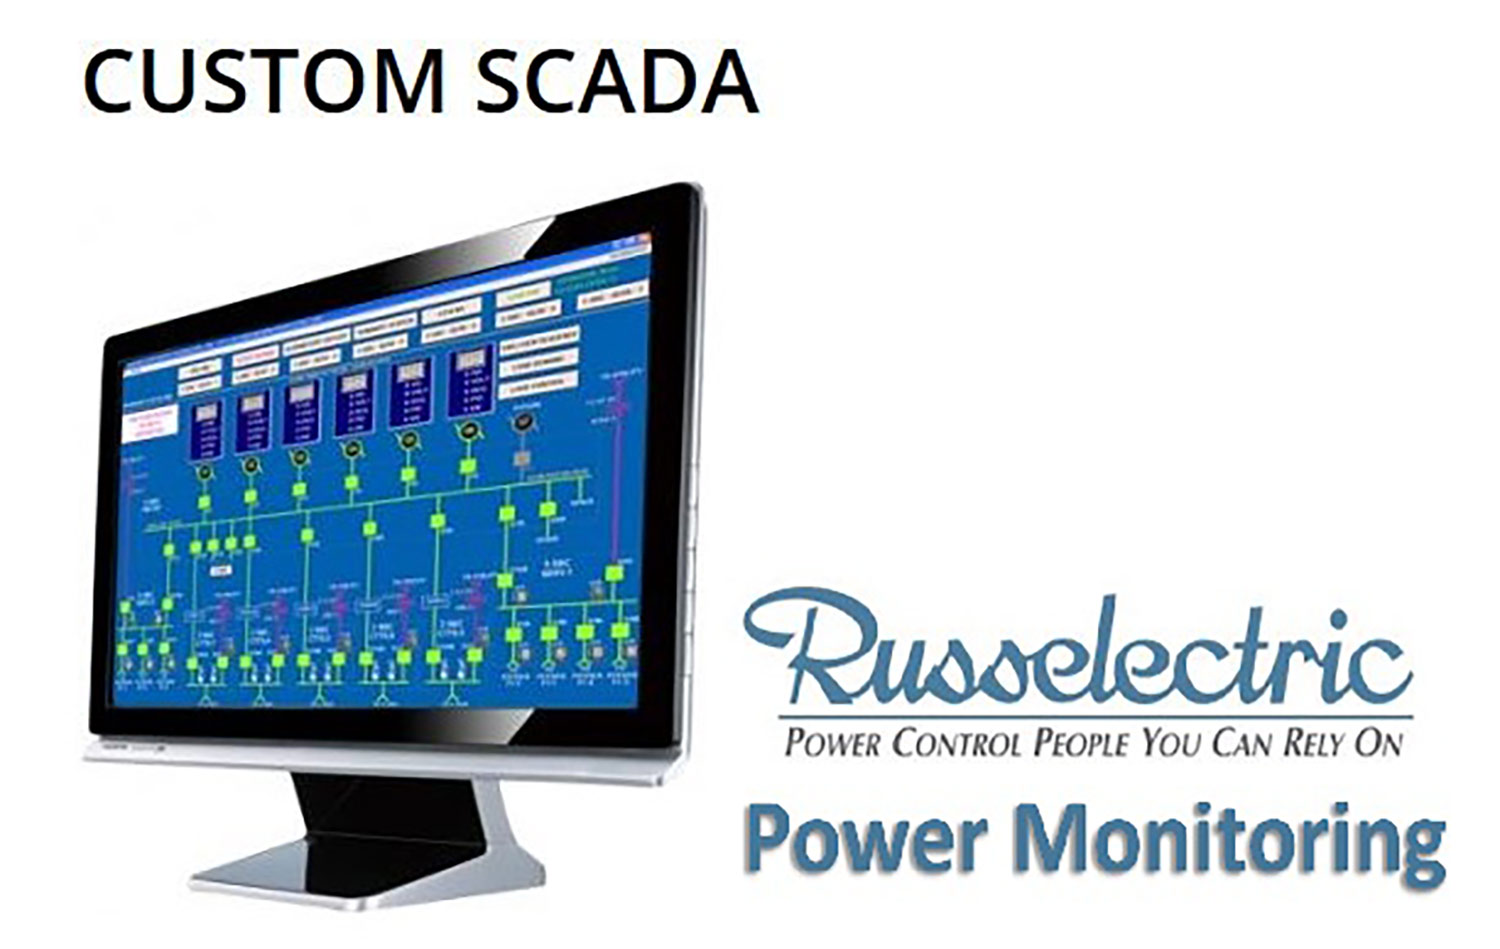 Russelectric Power Monitoring